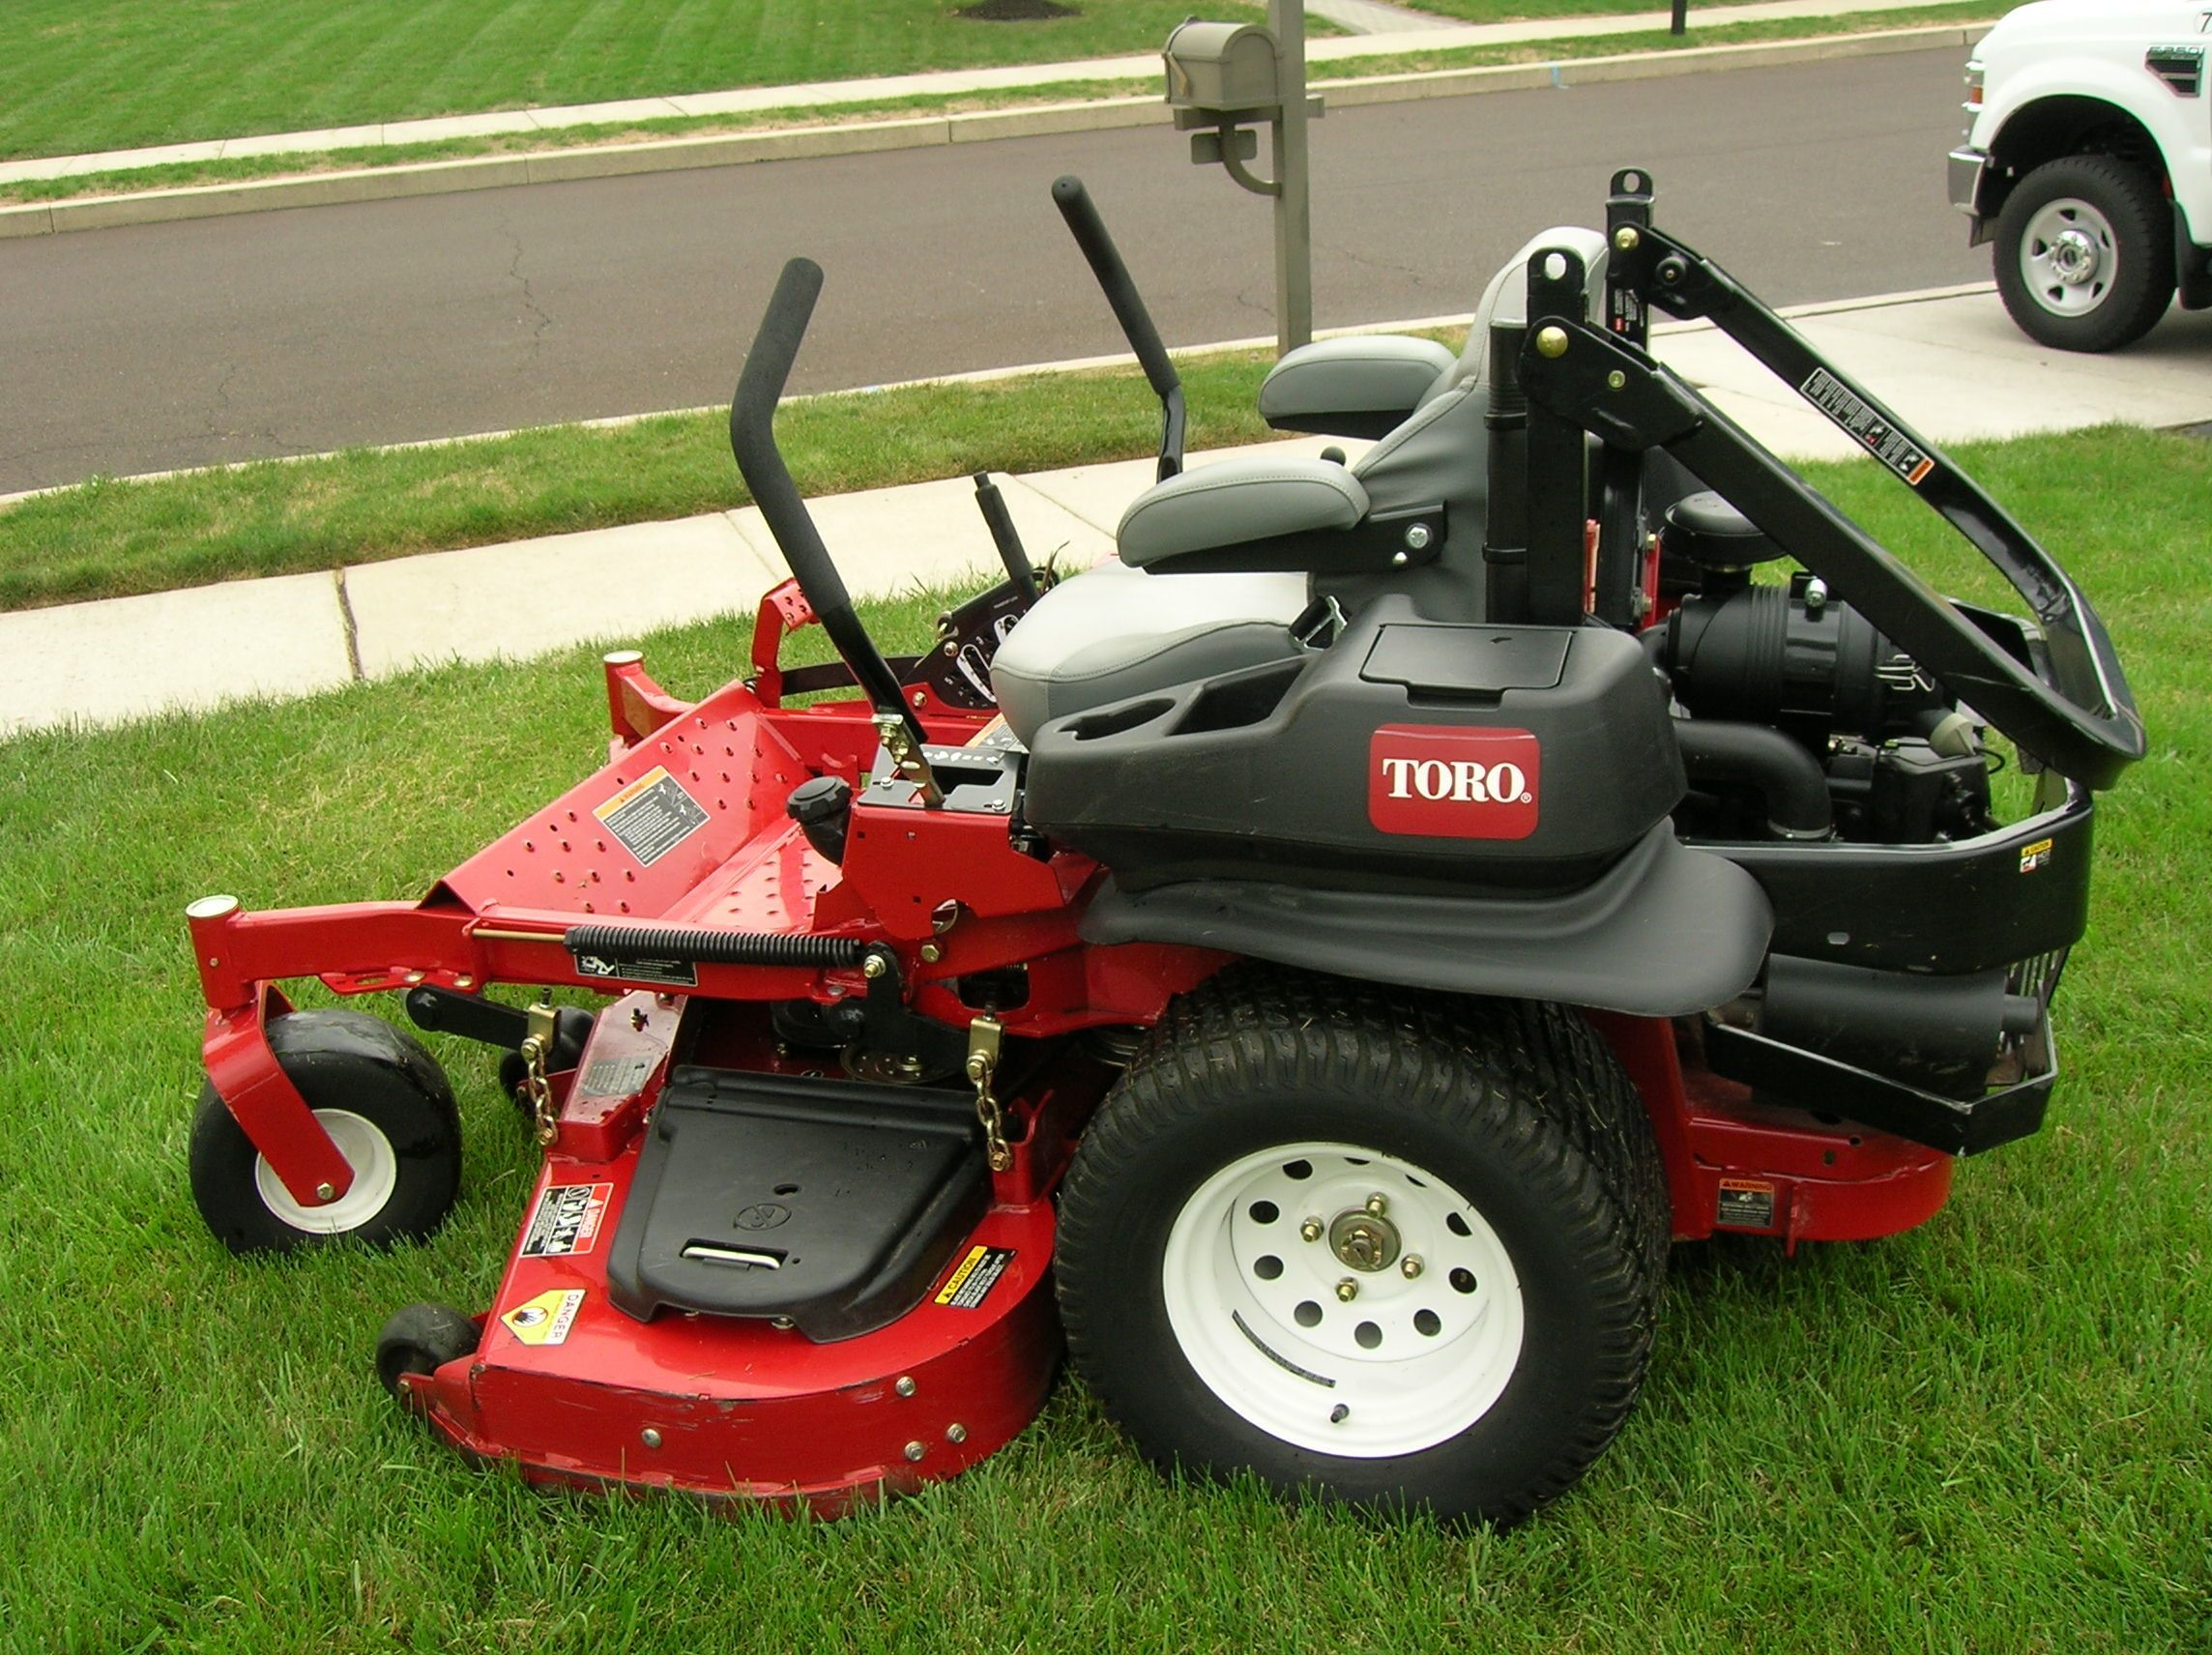 Toro Riding Lawn Mowers In Okeechobee Florida At Lawn Tamer Inc 34972 863 763 5606 Best Lawn Mower Lawn Mower Lawn Mower Trailer